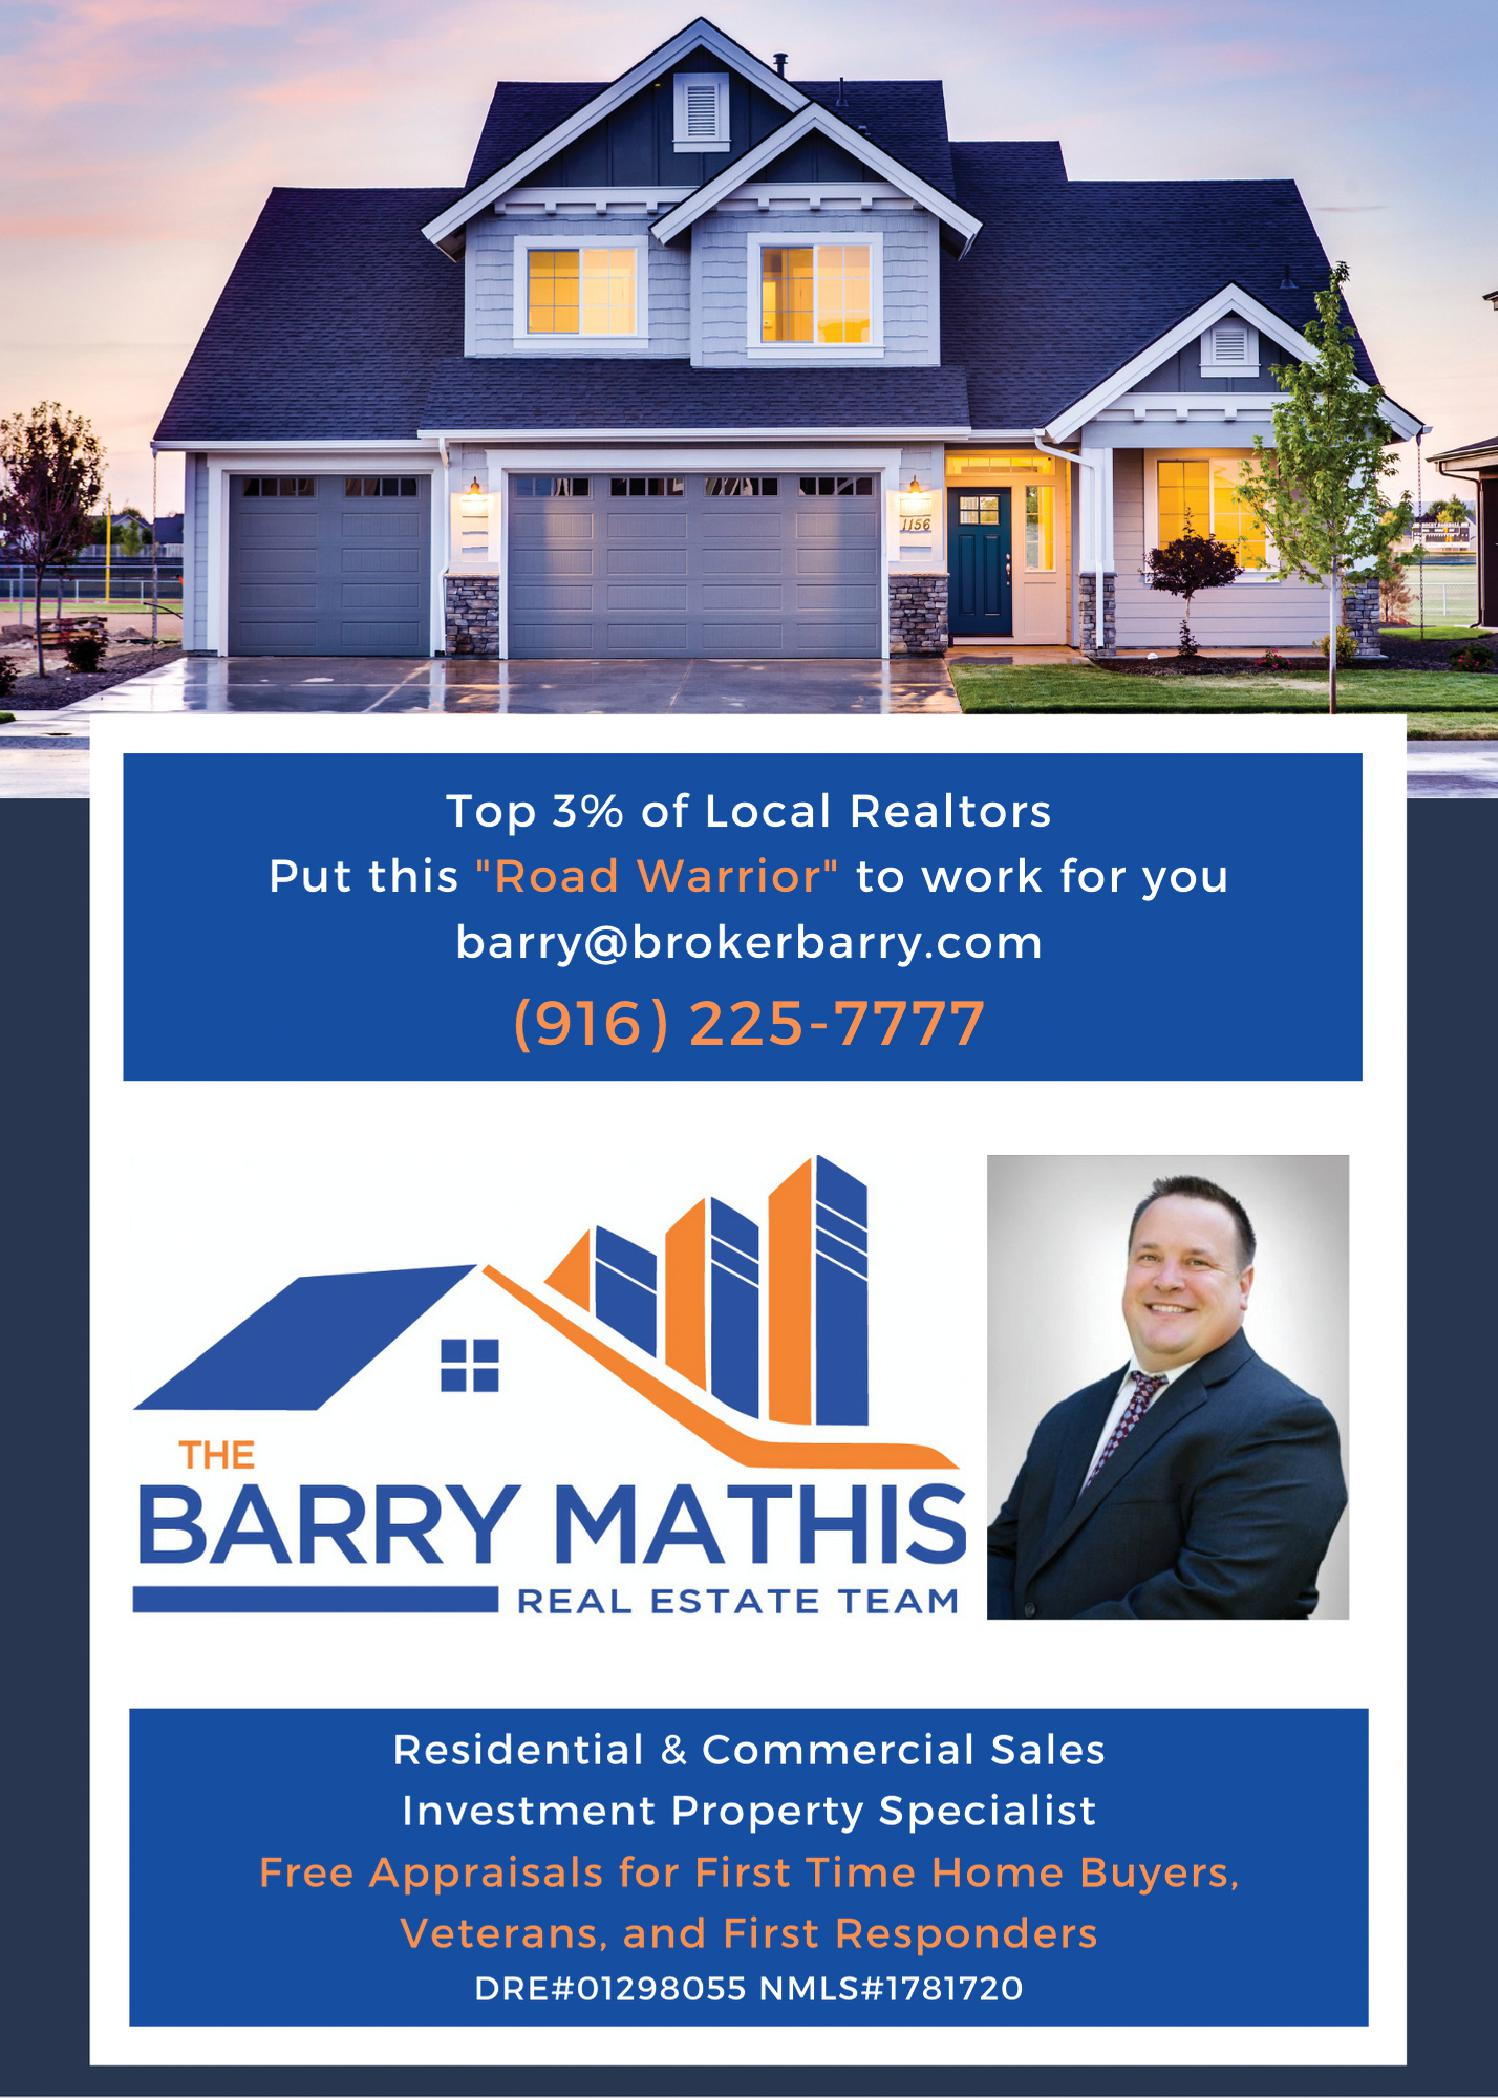 The Barry Mathis Real Estate Team